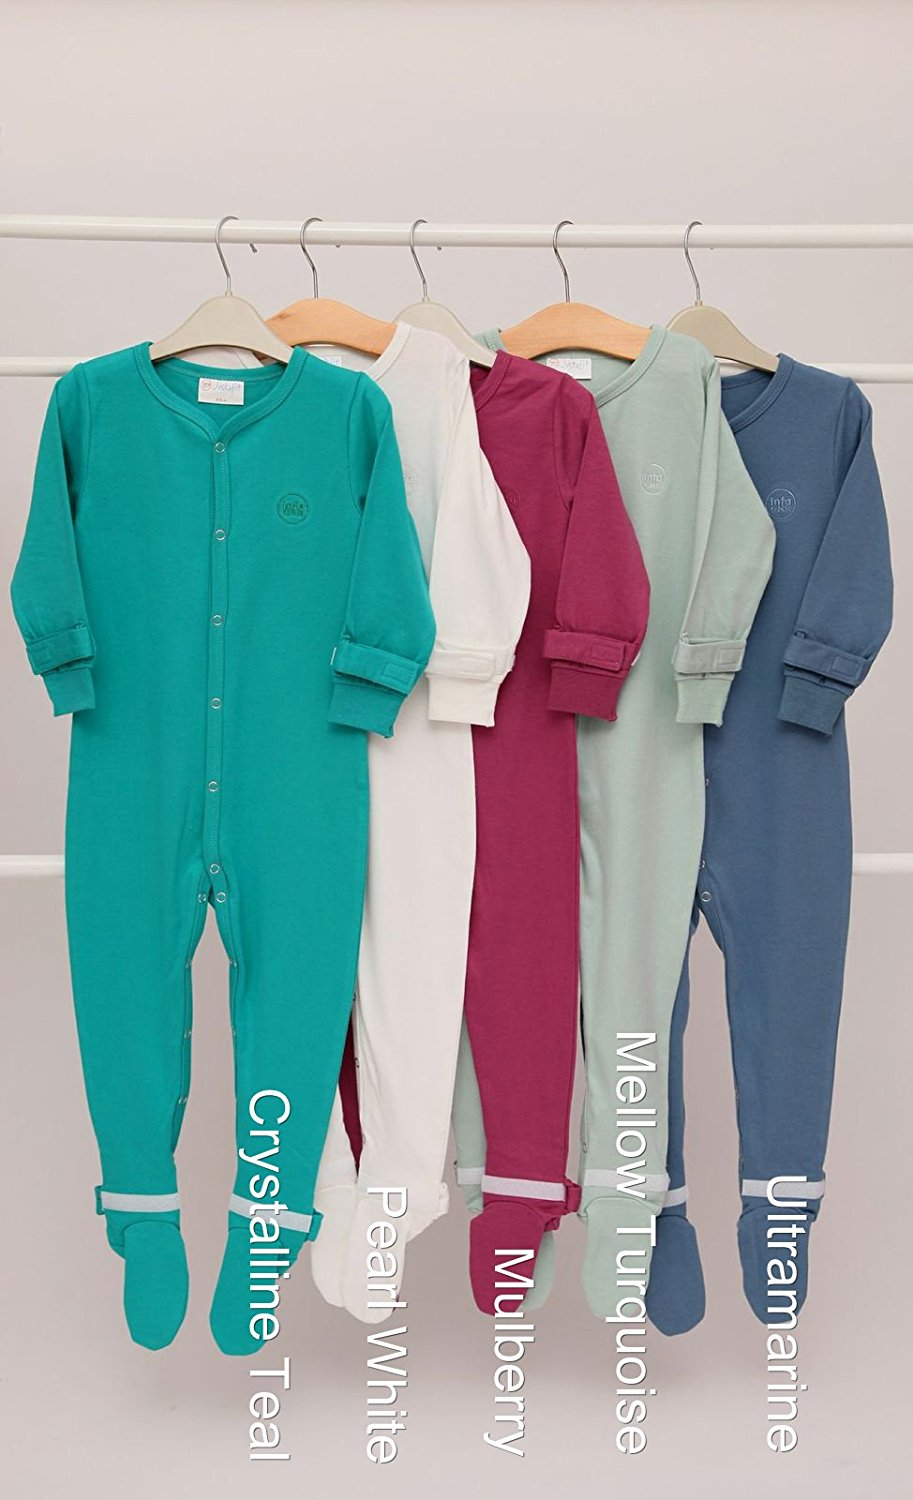 Choose your Colour and Size Justafit Adjustable Baby Sleepsuit 2 Pack